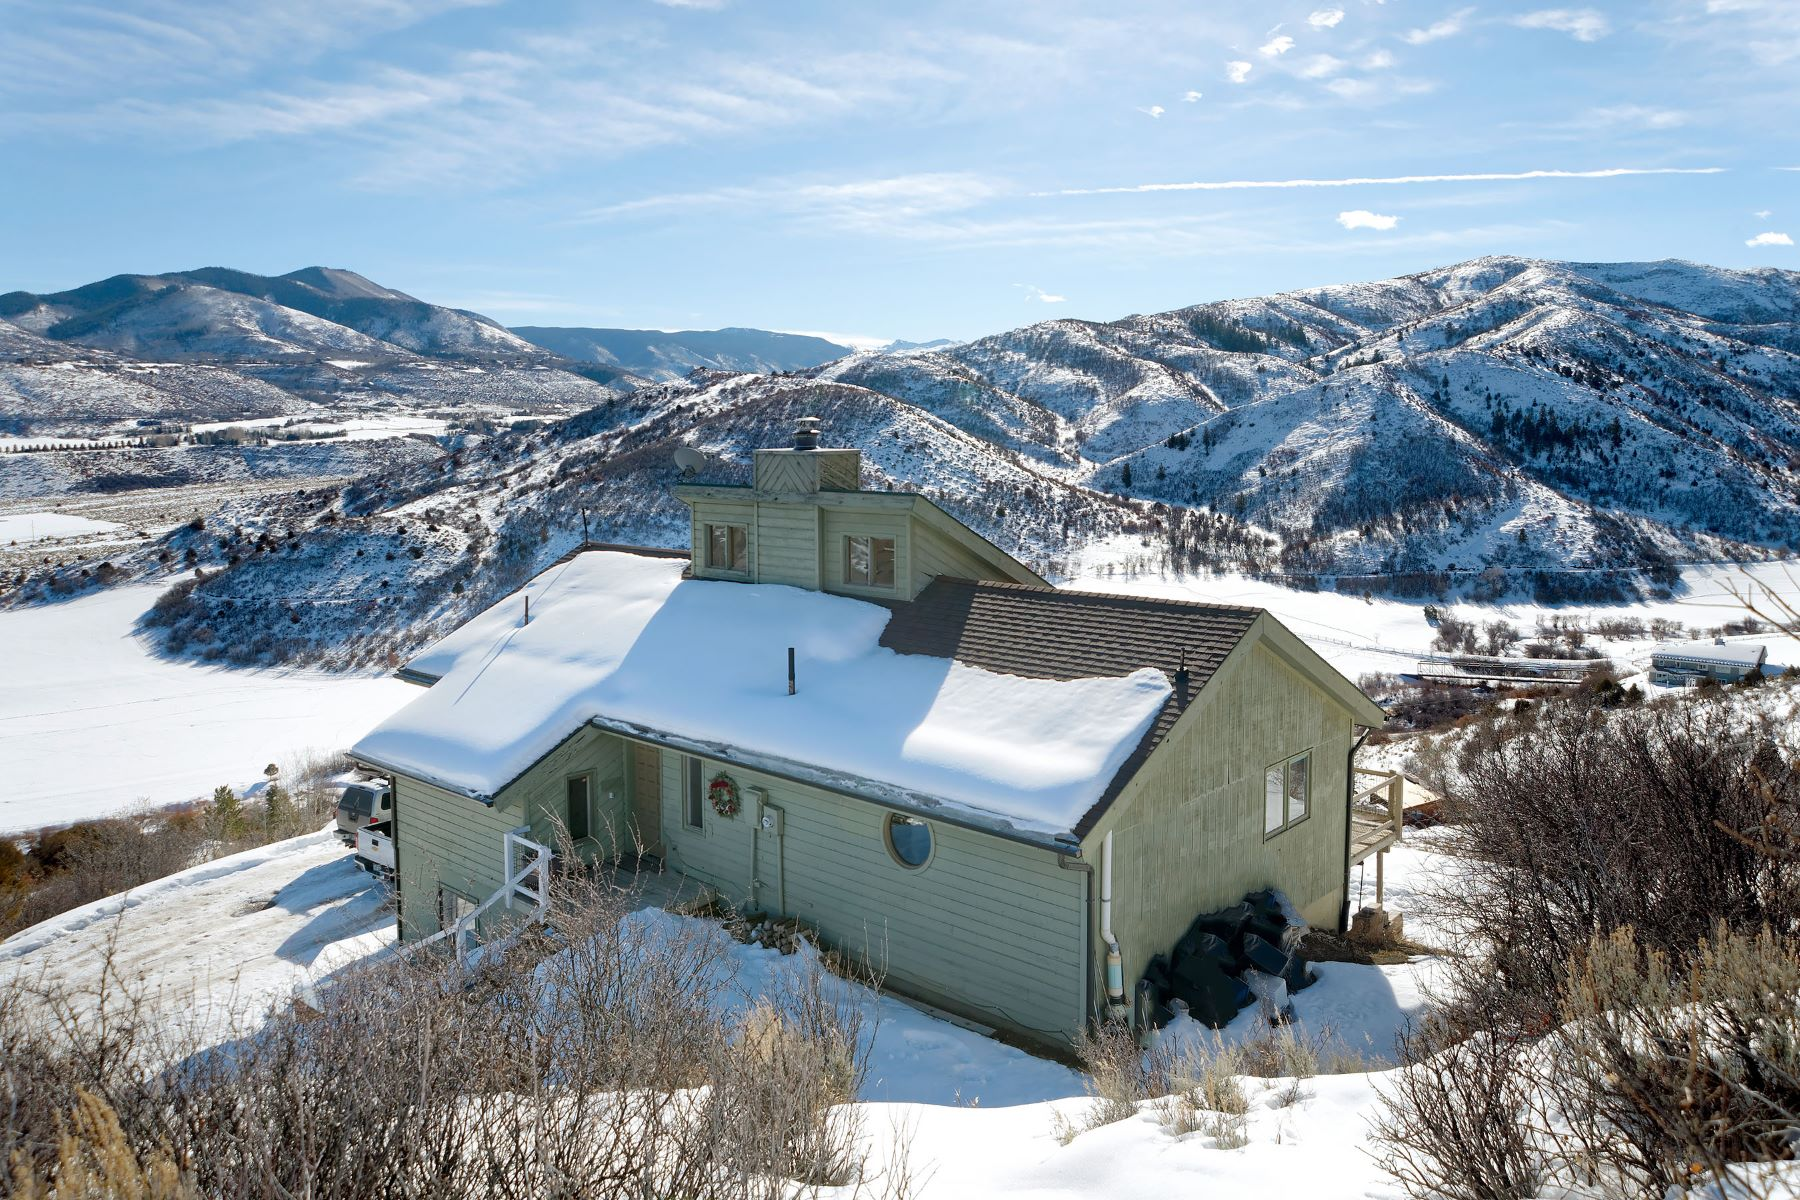 Single Family Home for Sale at Panoramic Elk Mountain Views from Lenado to Snowmass 91 Solar Way Aspen, Colorado, 81611 United States